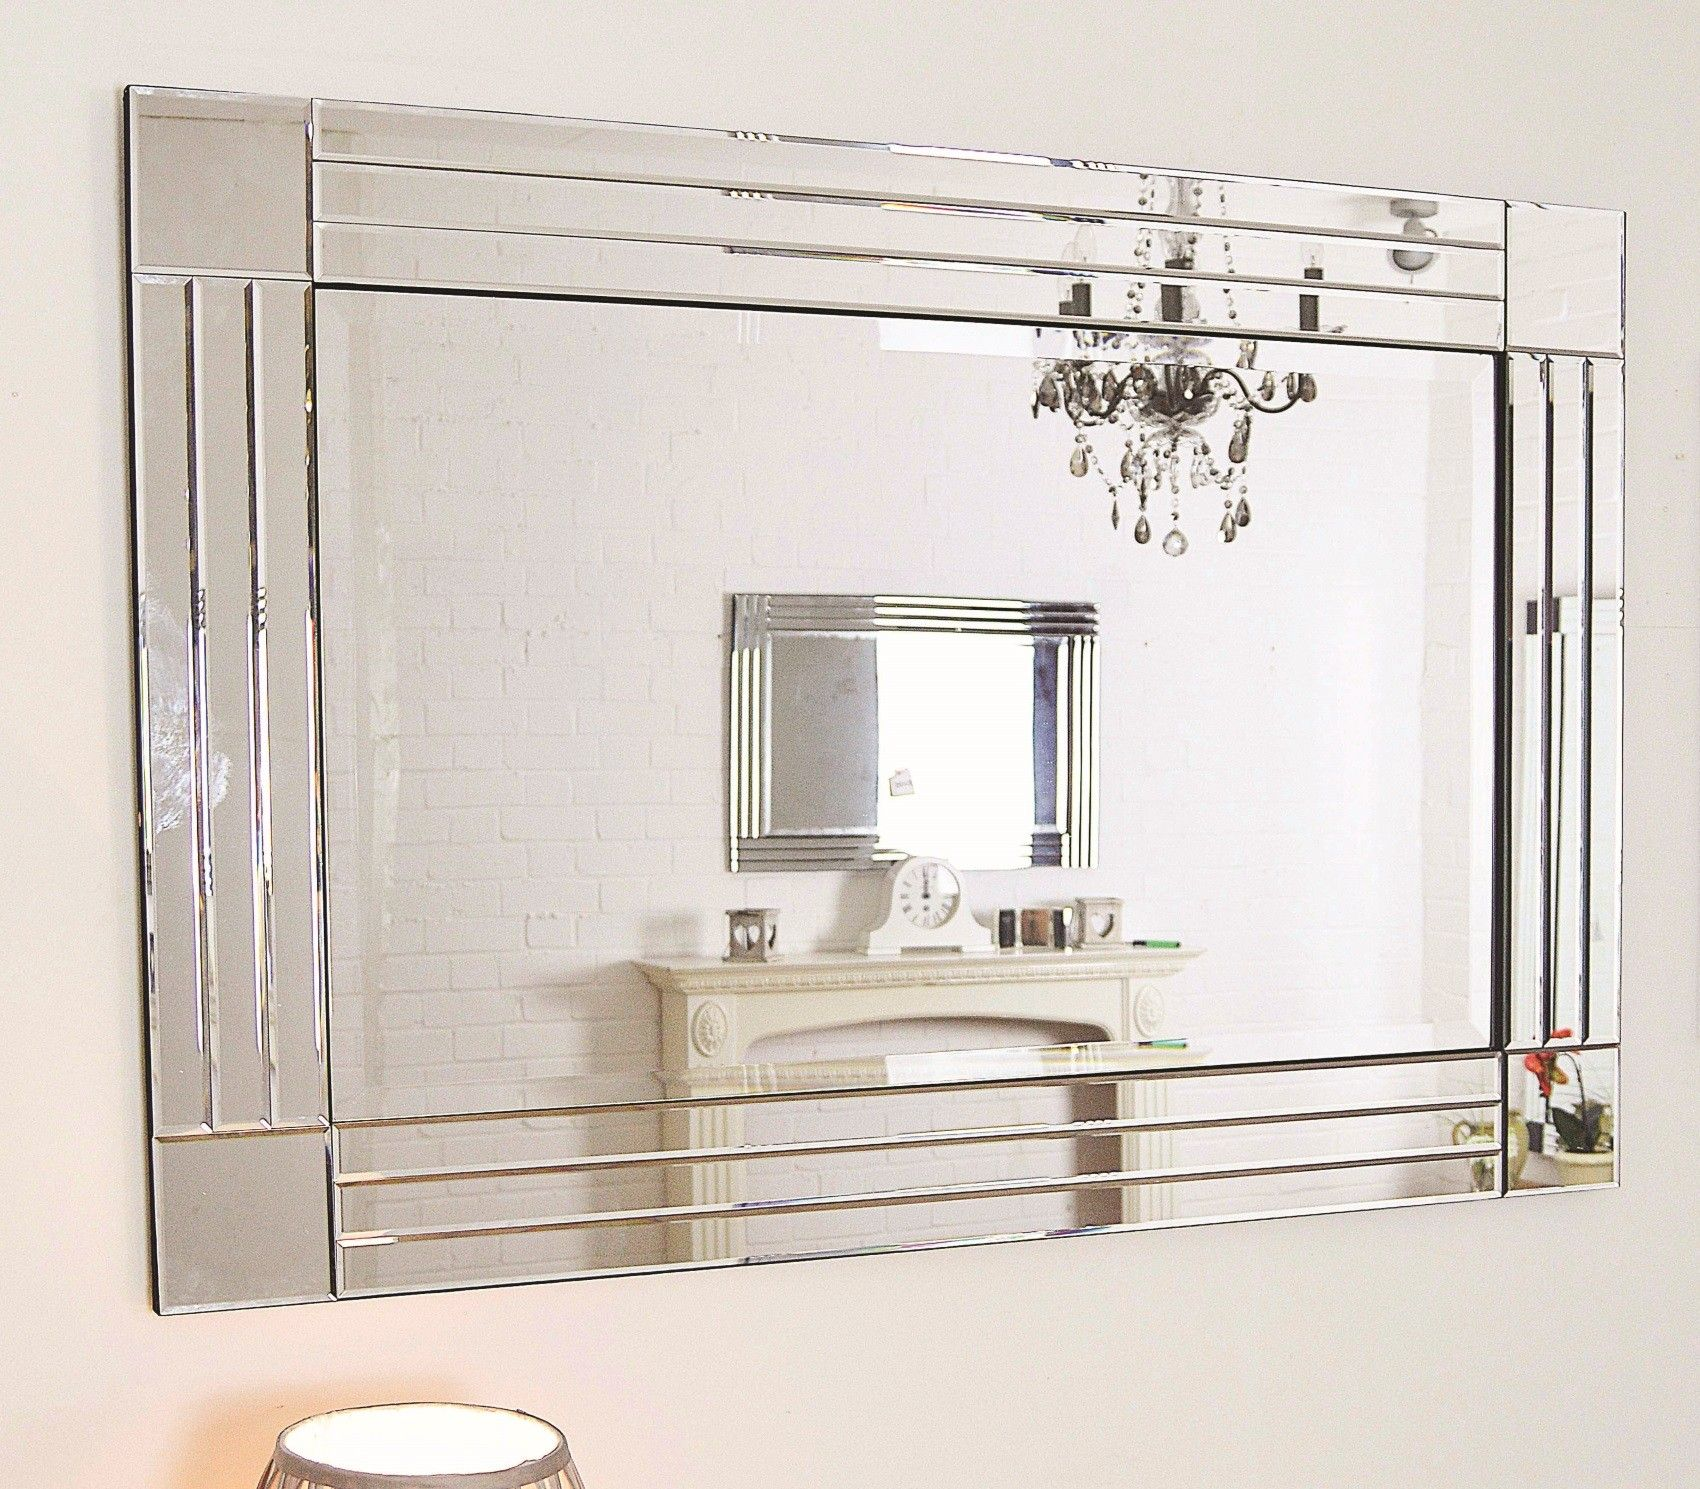 decorative mirrors for bathroom. Large Silver Triple Bevelled Edge Venetian Wall Mirror 3Ft11 X 2Ft8 120cm 80cm Decorative Mirrors For Bathroom B